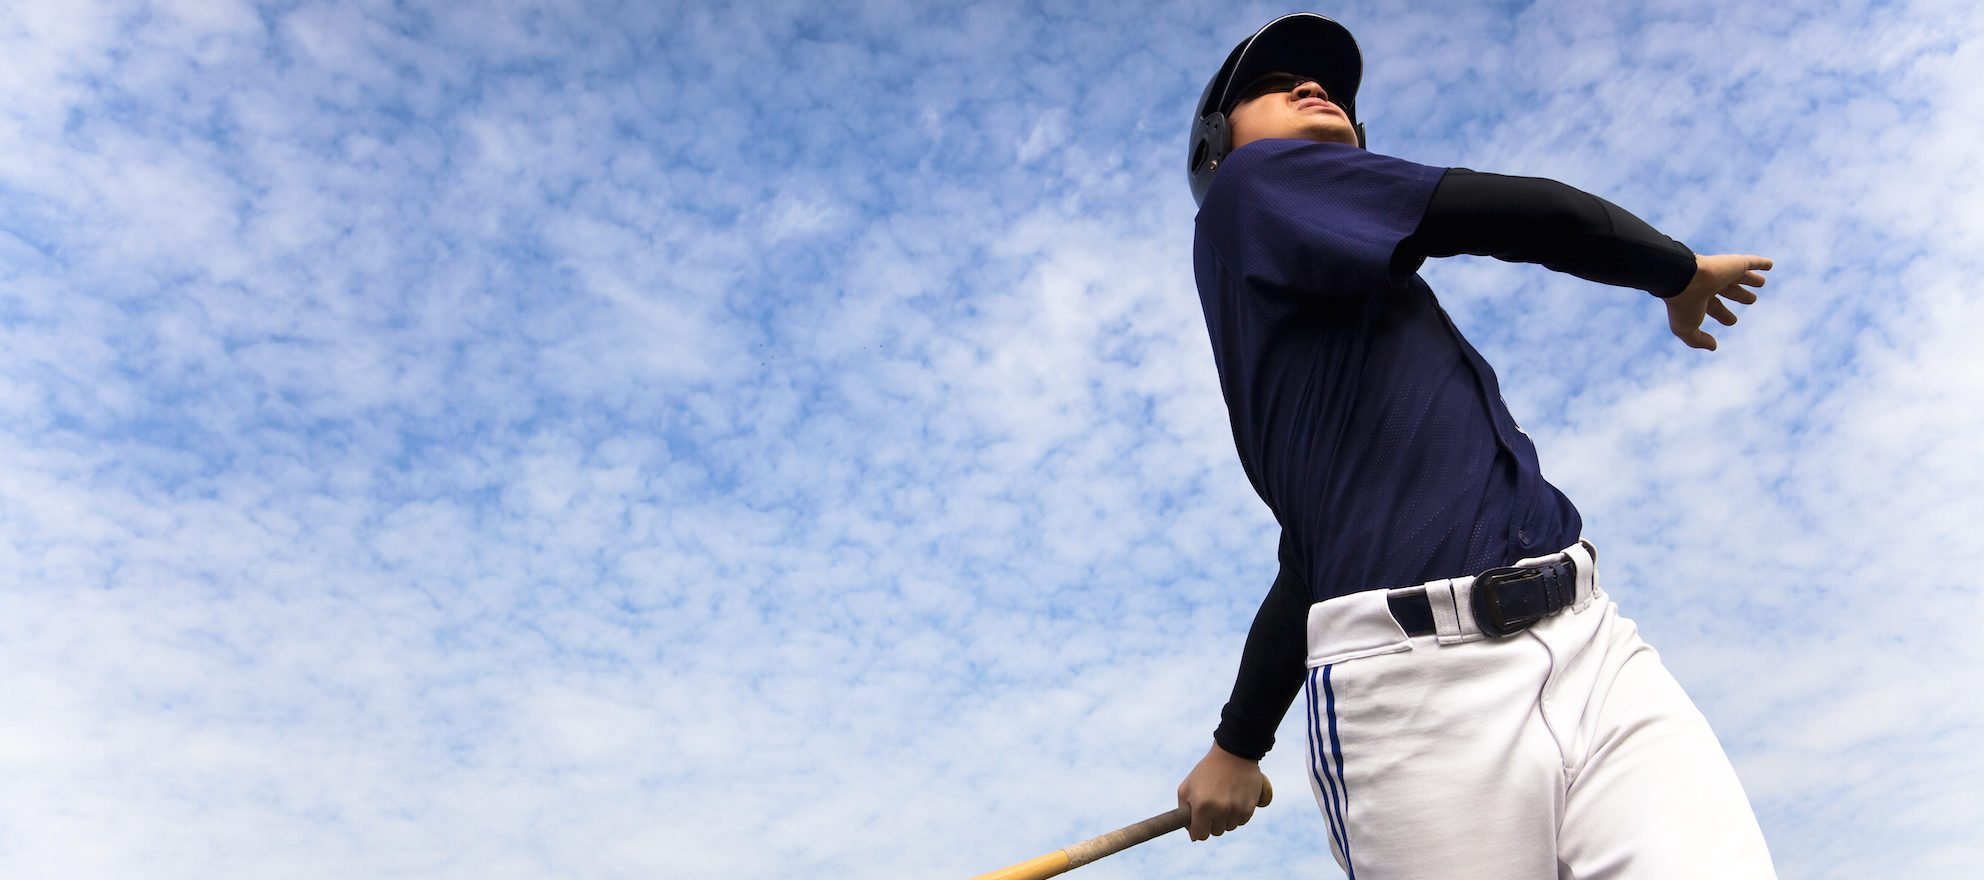 Baseball stars featured in franchisor's video series -- again